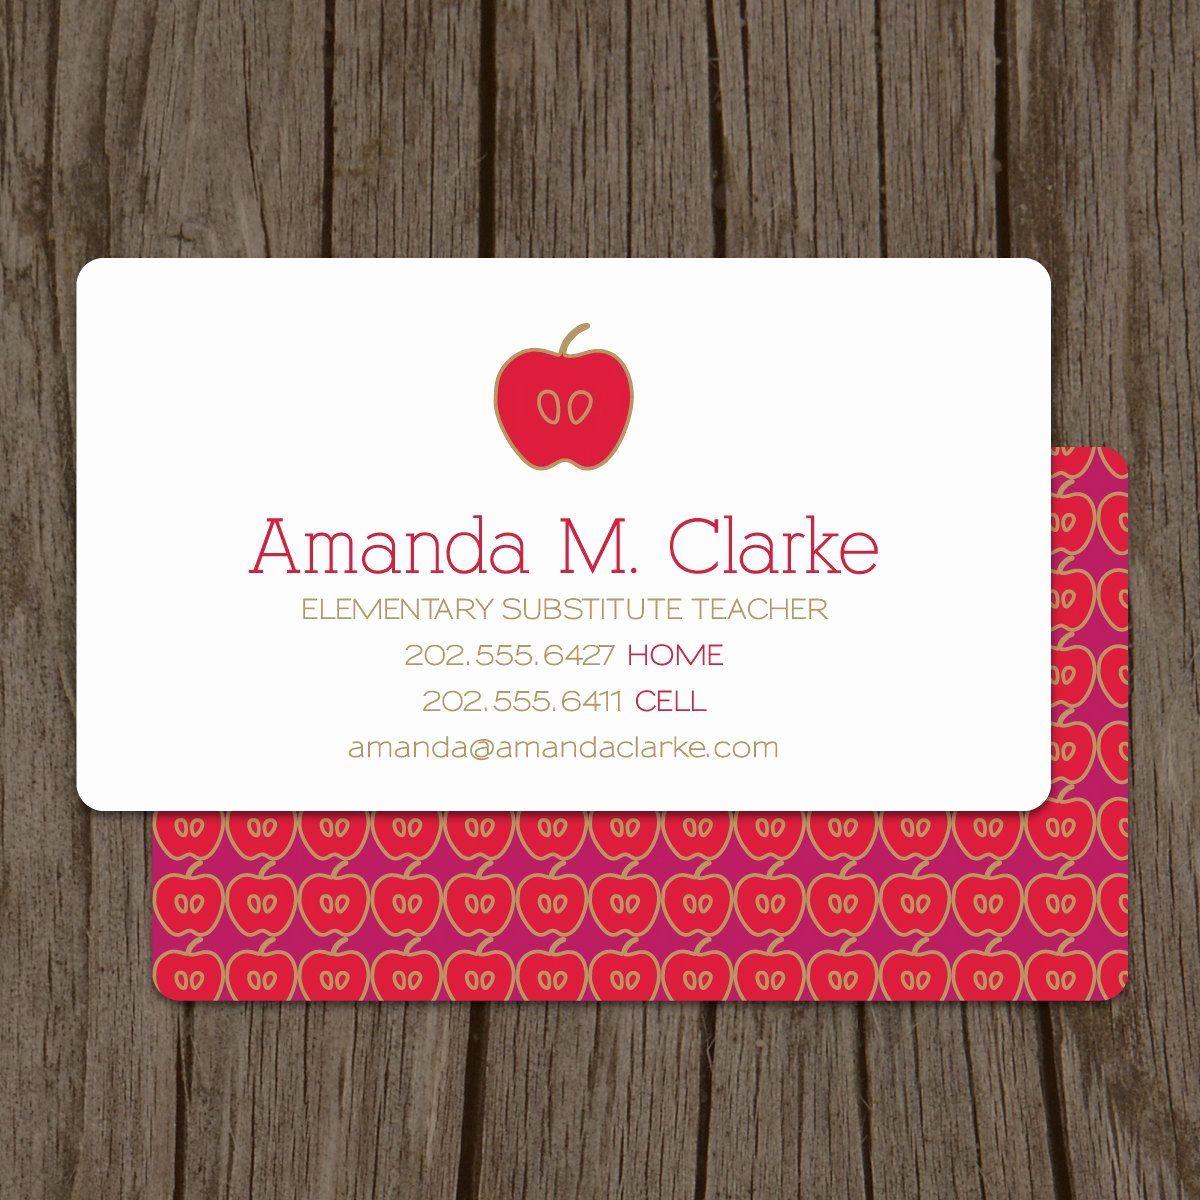 Substitute Teacher Business Cards New Modern Substitute Teacher Business Card Set Of 100 $48 00